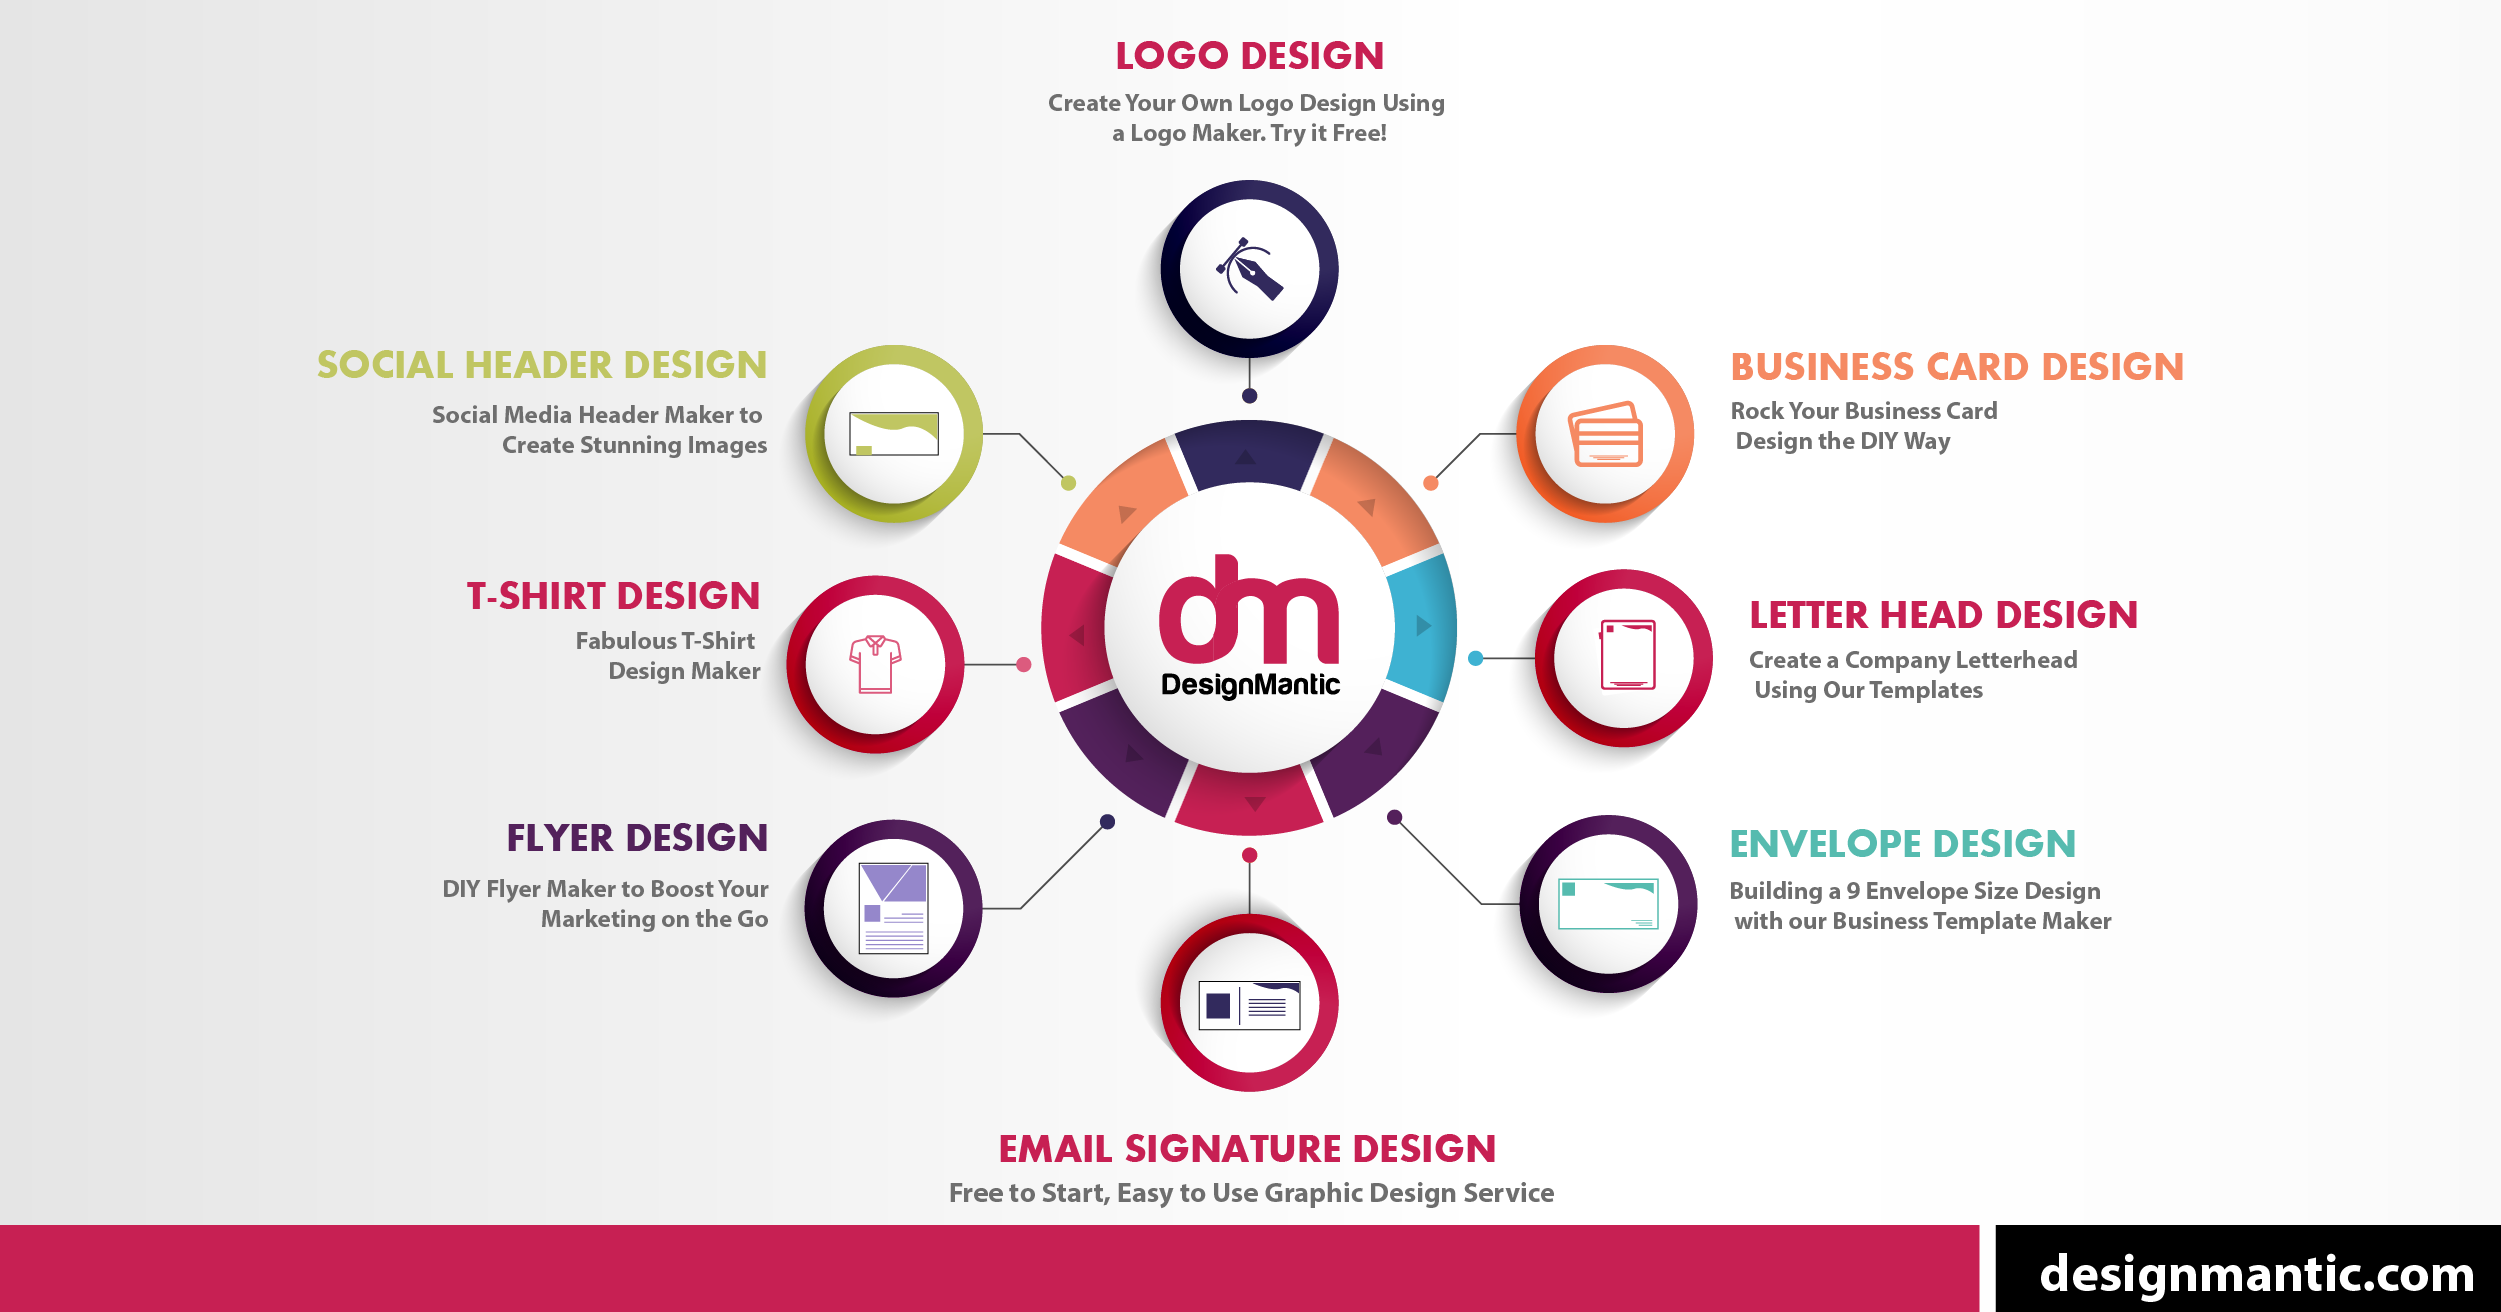 Logo Design Using AI Logo Maker Tool | DesignMantic: The Design Shop